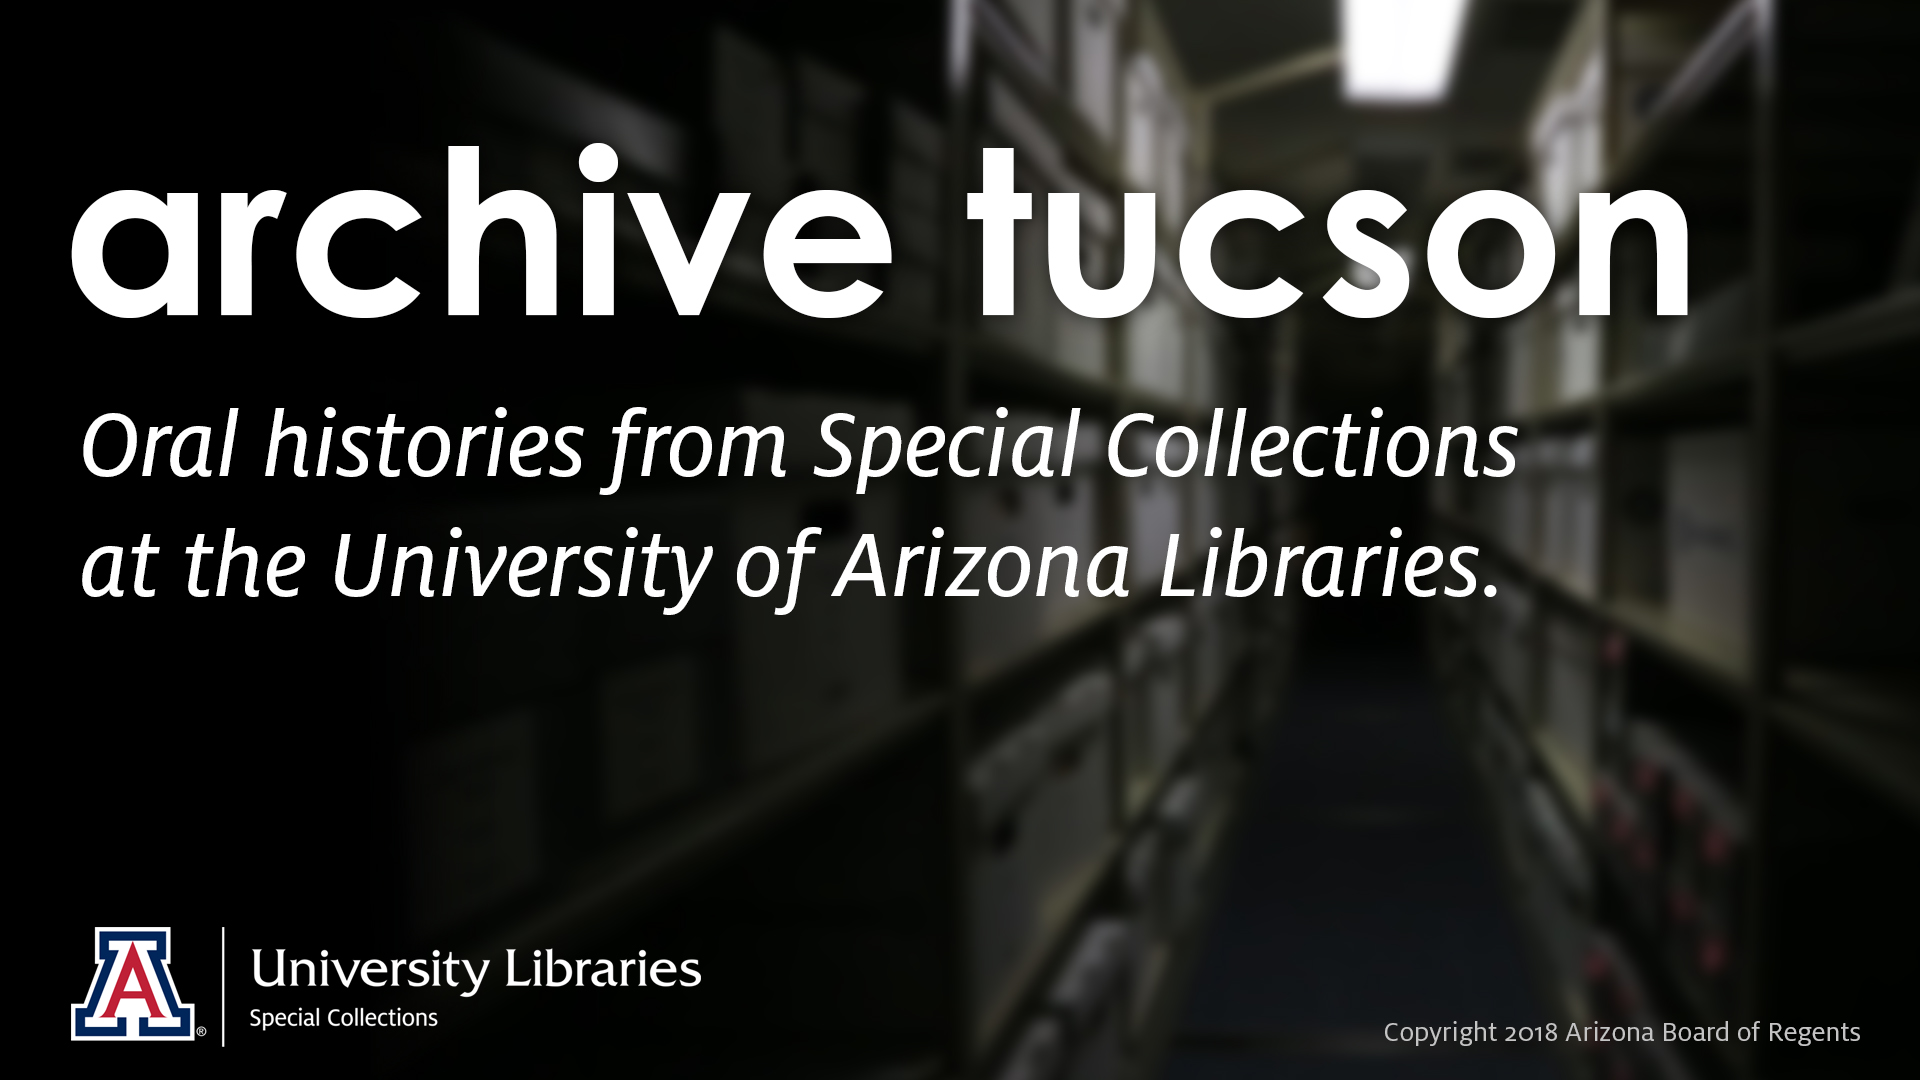 Archive Tucson is a project of the University of Arizona Libraries' Special Collections to preserve the stories of our neighbors in Tucson and Southern Arizona.